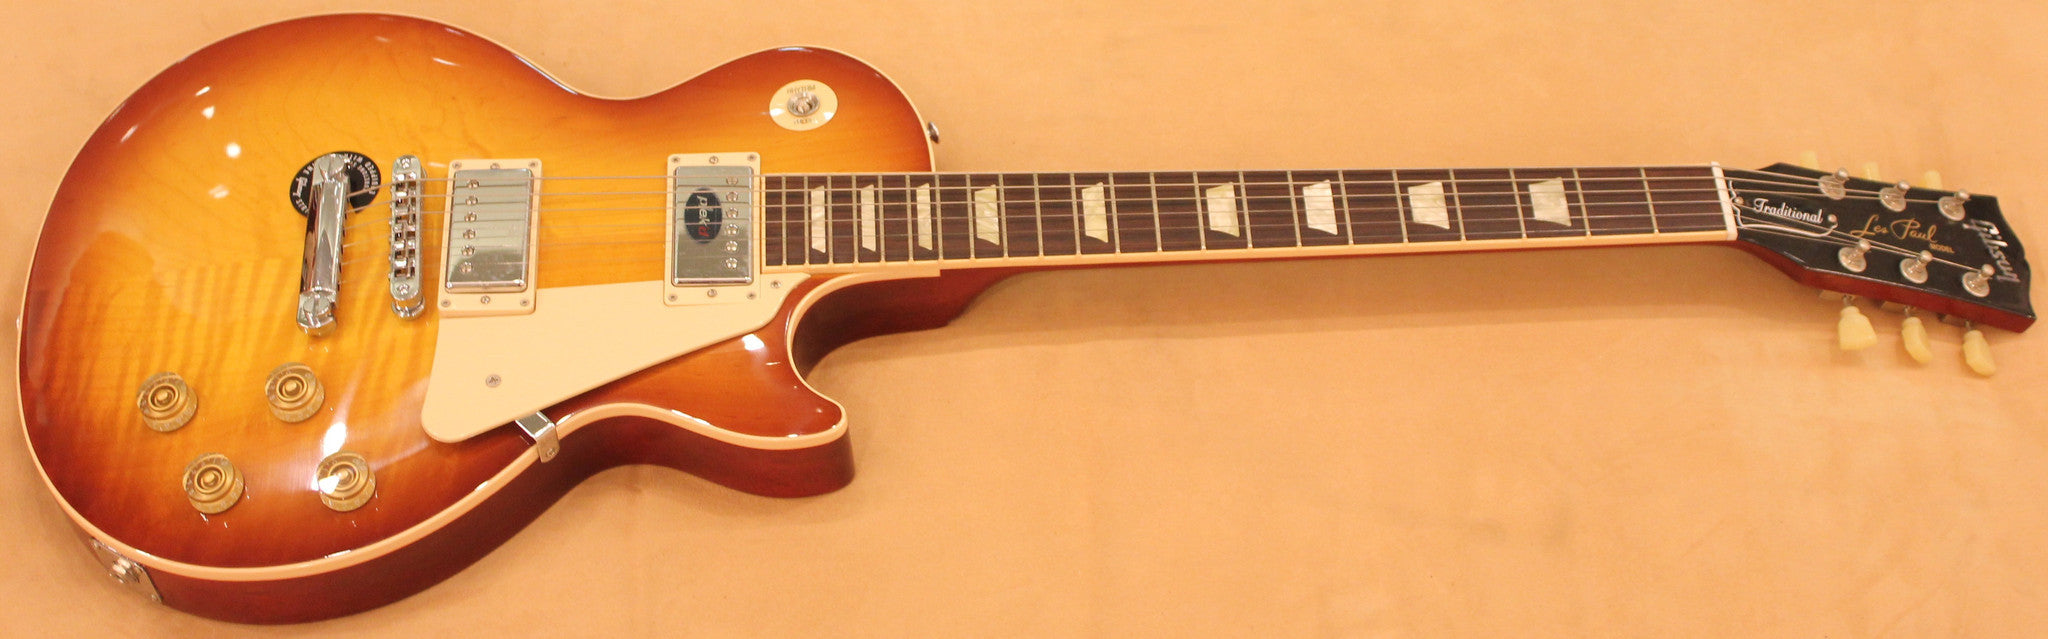 GIBSON LP TRADITIONAL 2012 ICE TEA - HIENDGUITAR.COM